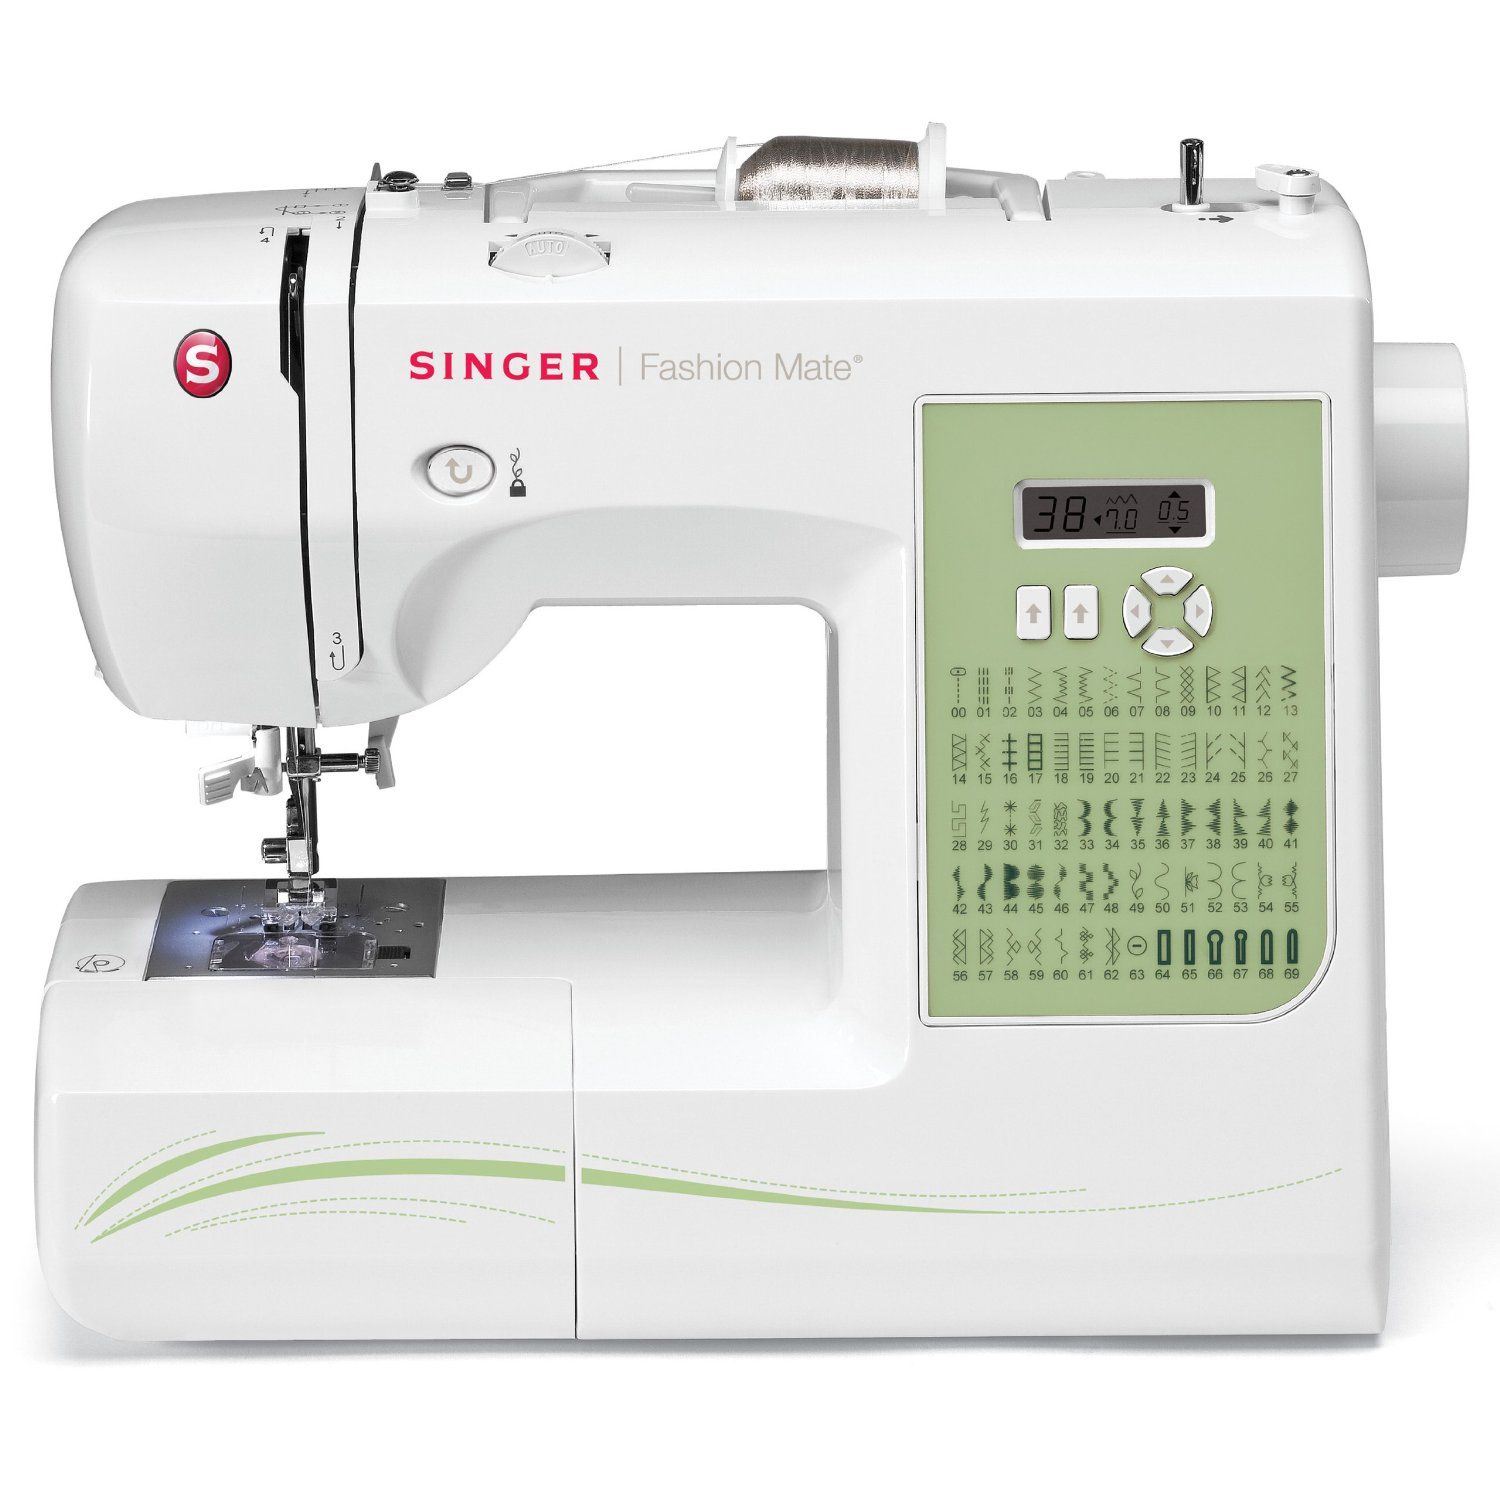 The Singer 7256 is a top rated computerized sewing machine